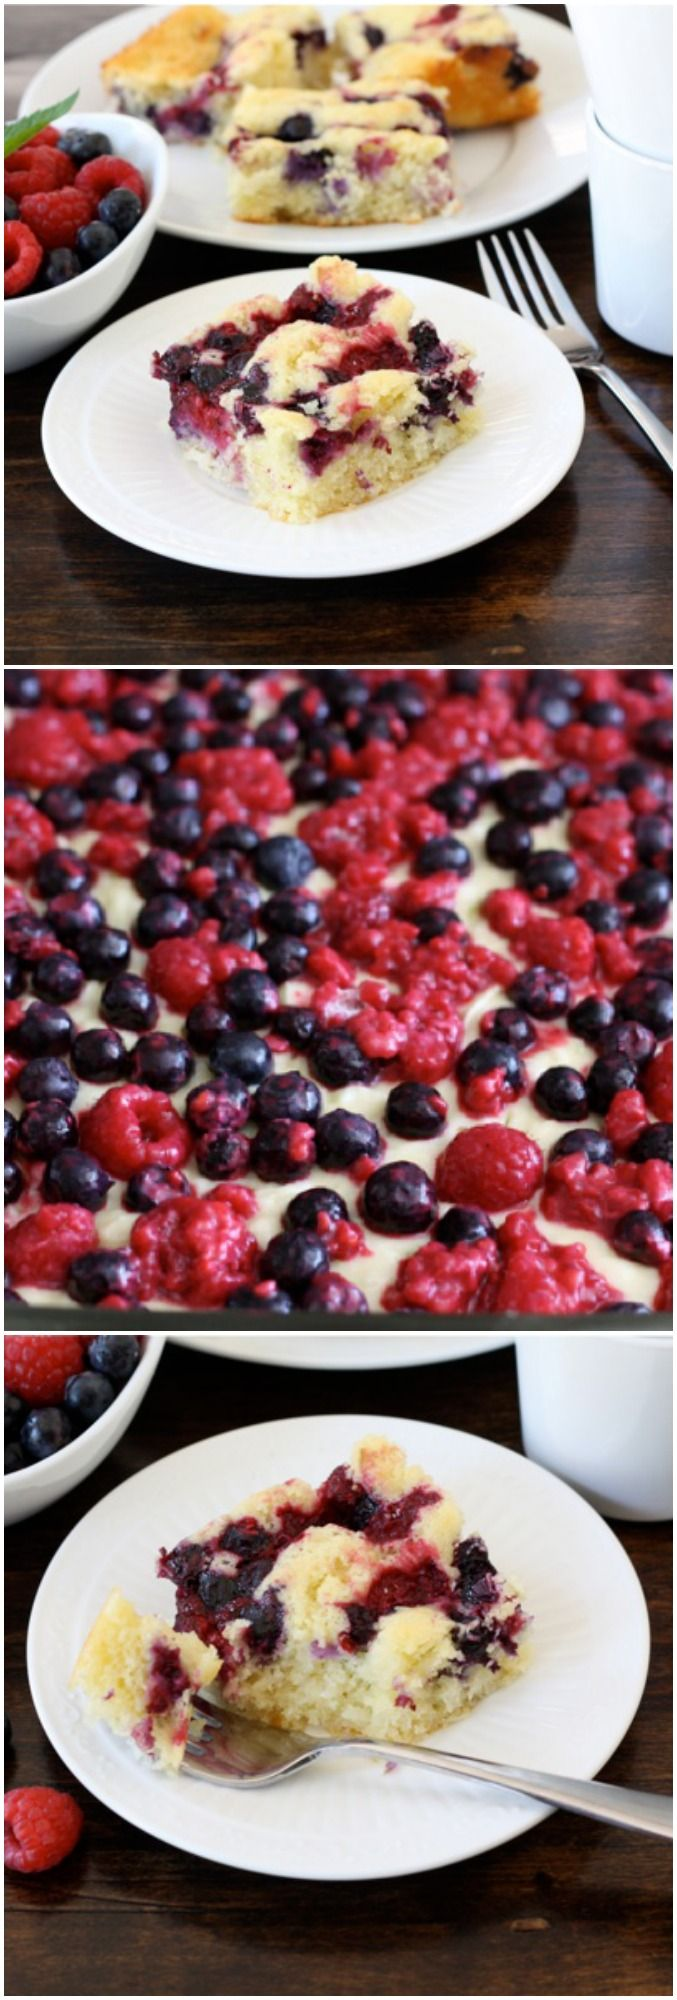 Coconut Lime Berry Cake Recipe on twopeasandtheirpod.com Love this cake! Perfect for summertime! #coconut #berry #cake